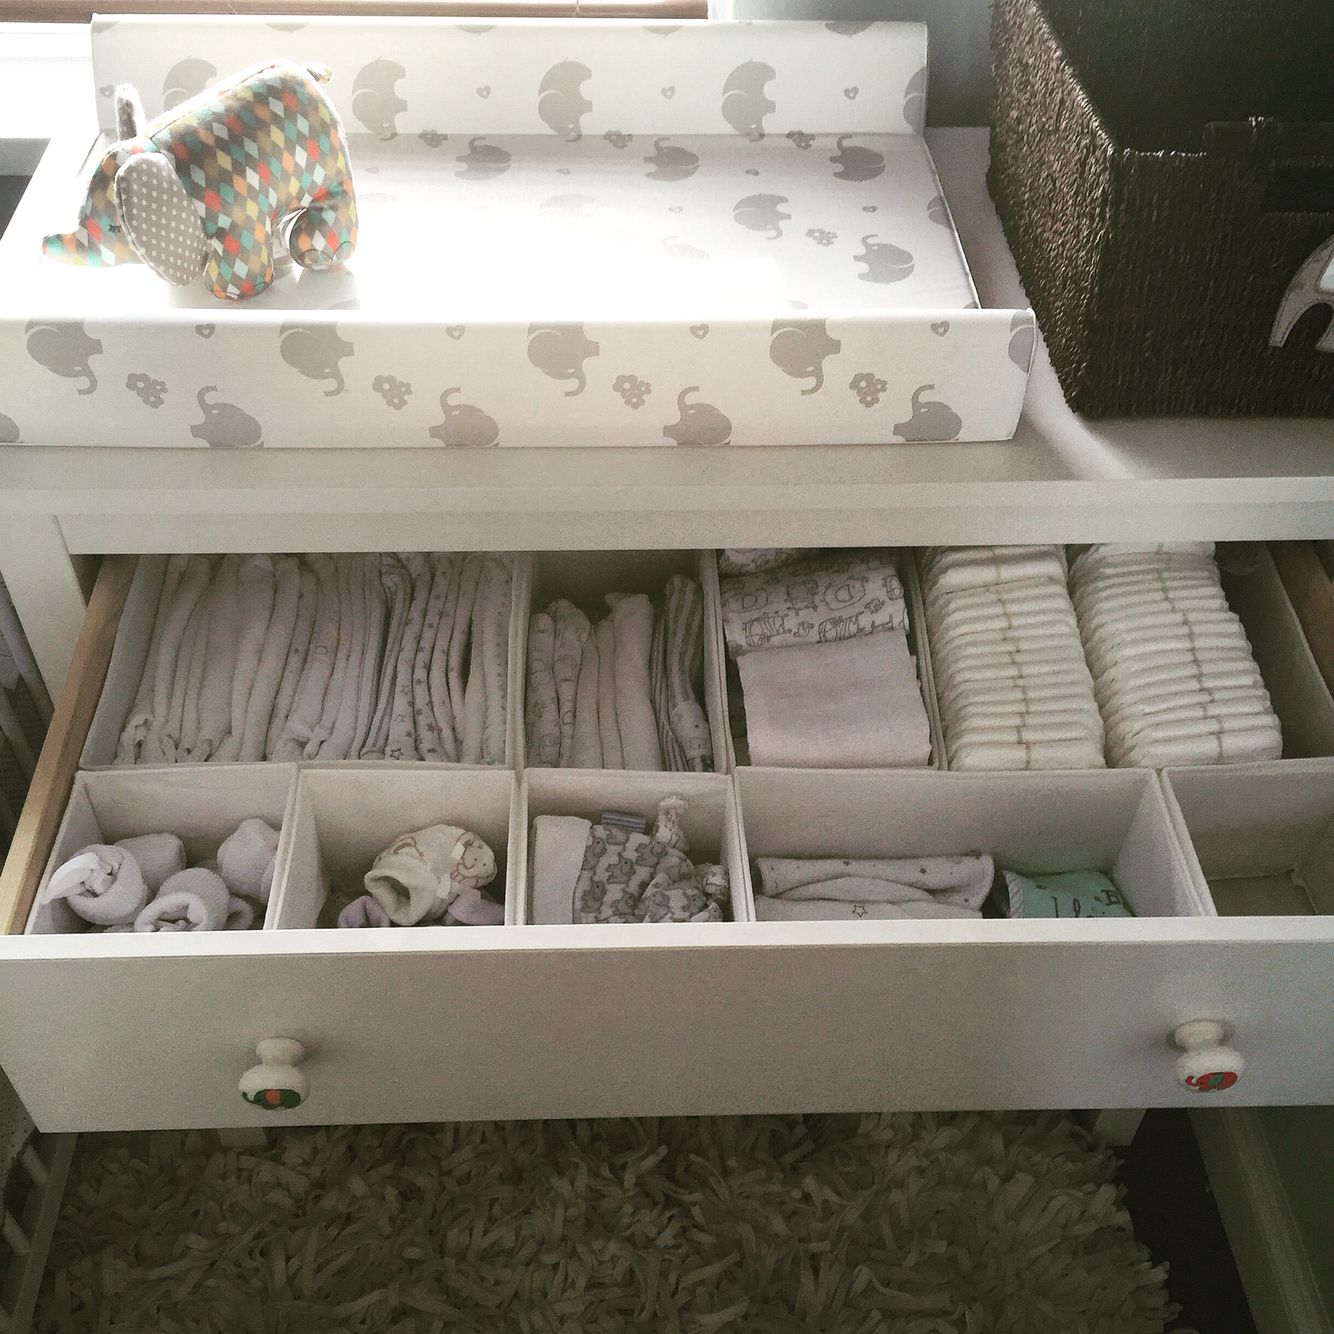 Baby Bedroom In A Box Special: Organisation Station! IKEA Skubb Boxes Perfect For